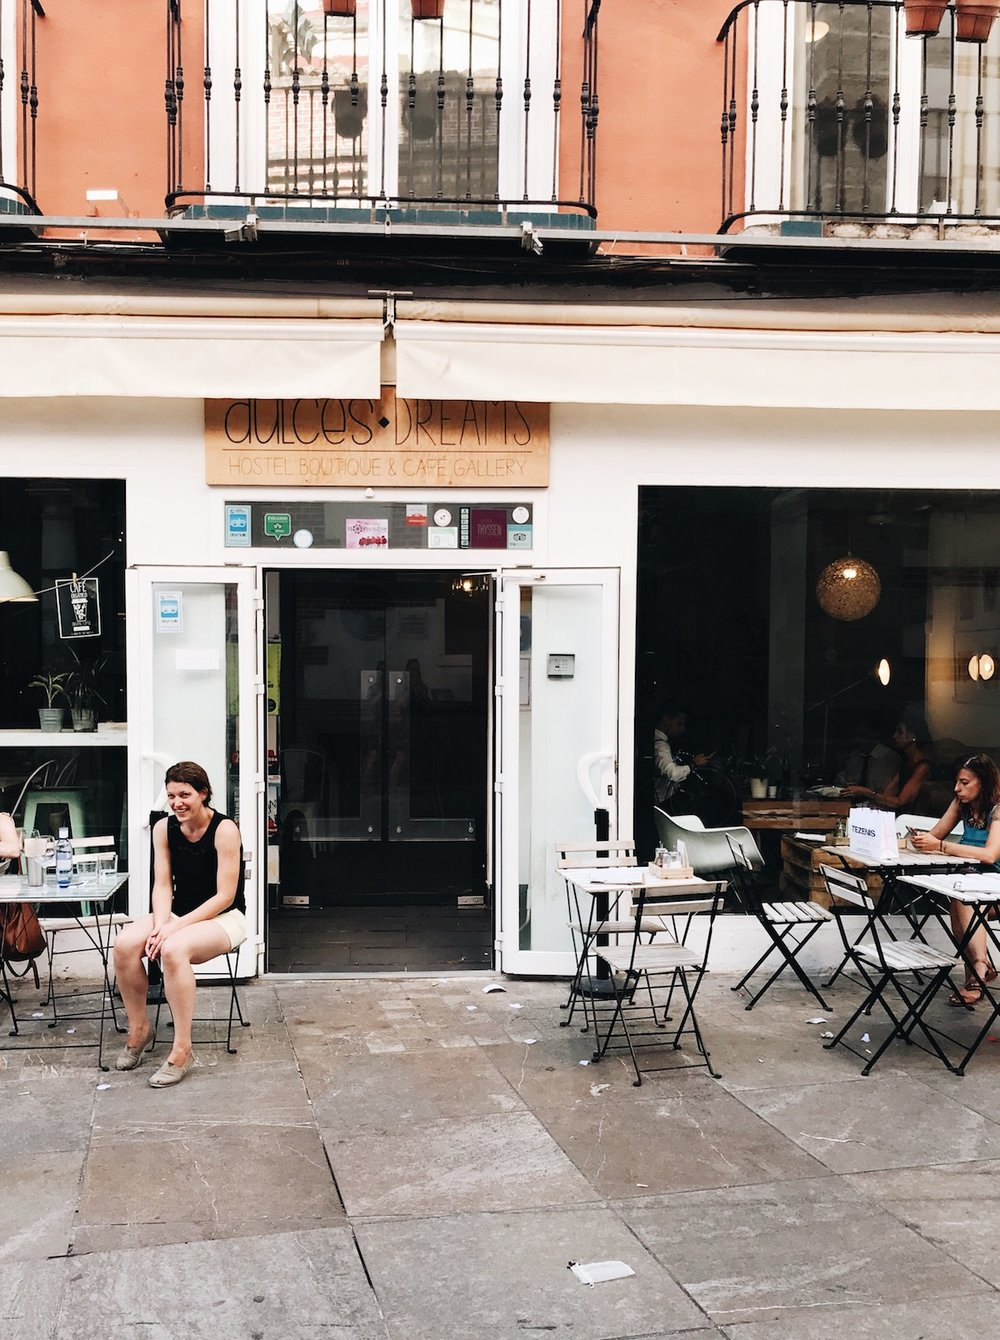 DUlce Dreams Cafe | A Handful of Favorite Cafes + Eats in Malaga, Spain | Ruby Josephine